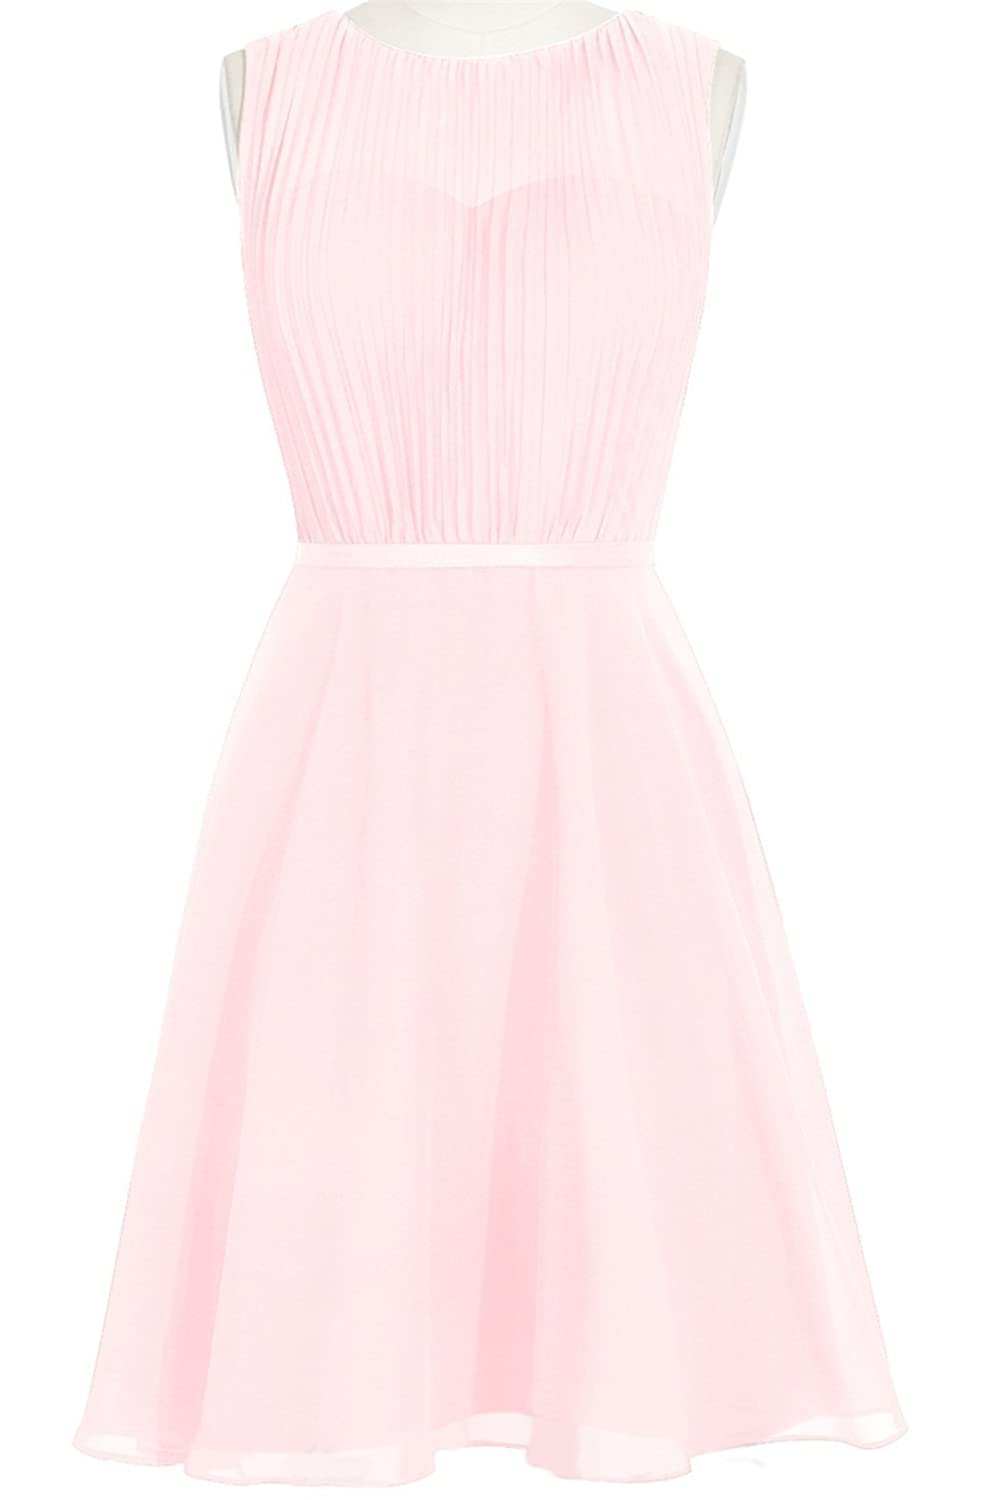 MittyDresses 2015 New Cocktail Homecoming Dresses for Girl Evening Party Size 26W US Blushing Pink